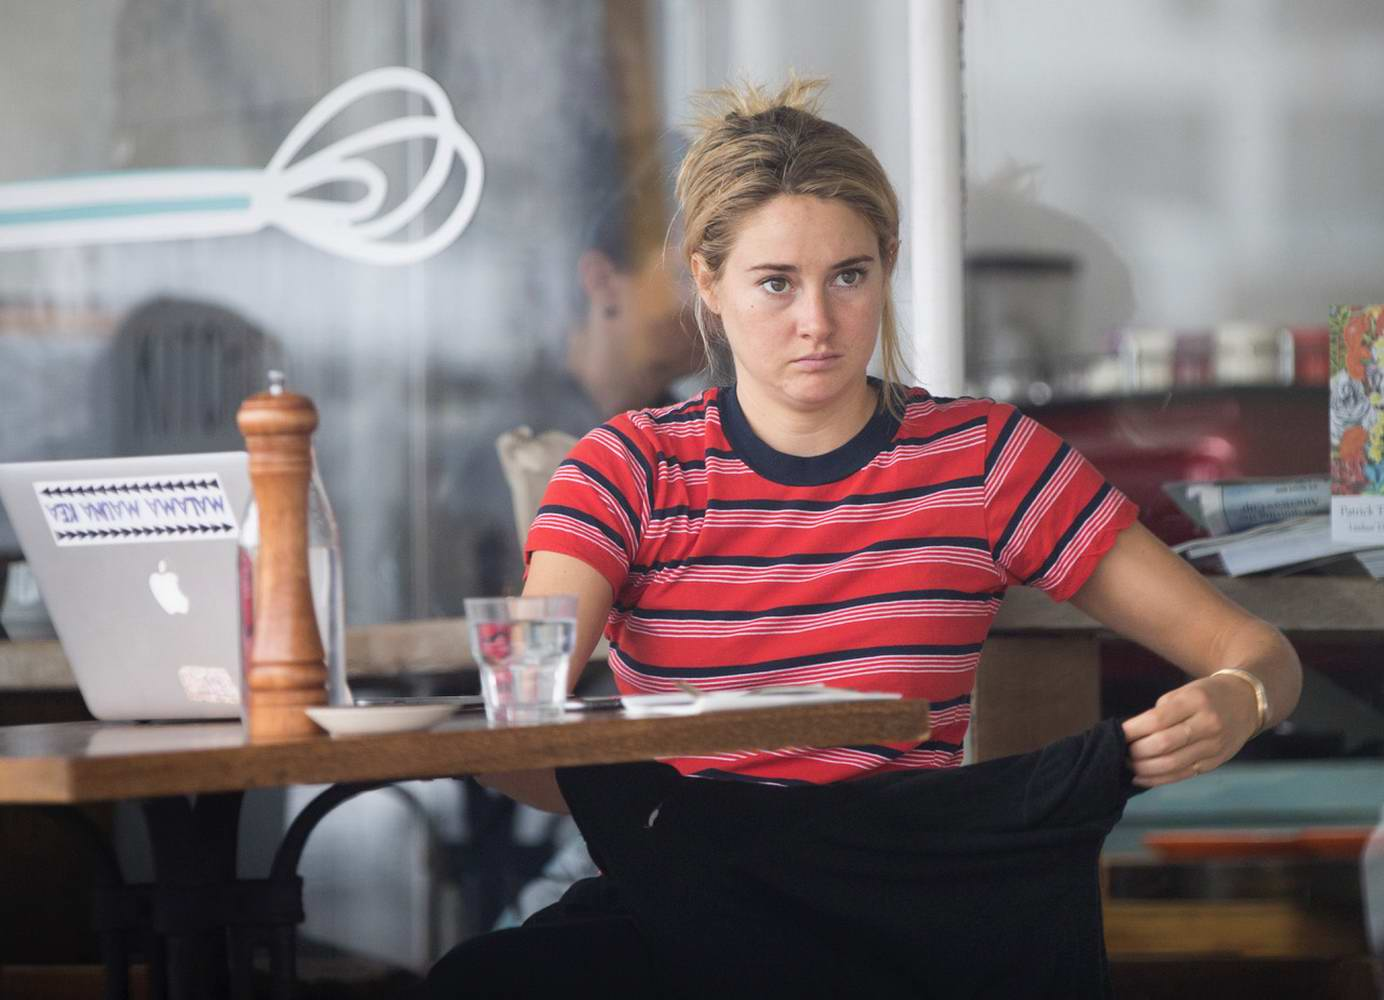 Shailene Woodley dines solo at a cafe in Auckland, New Zealand